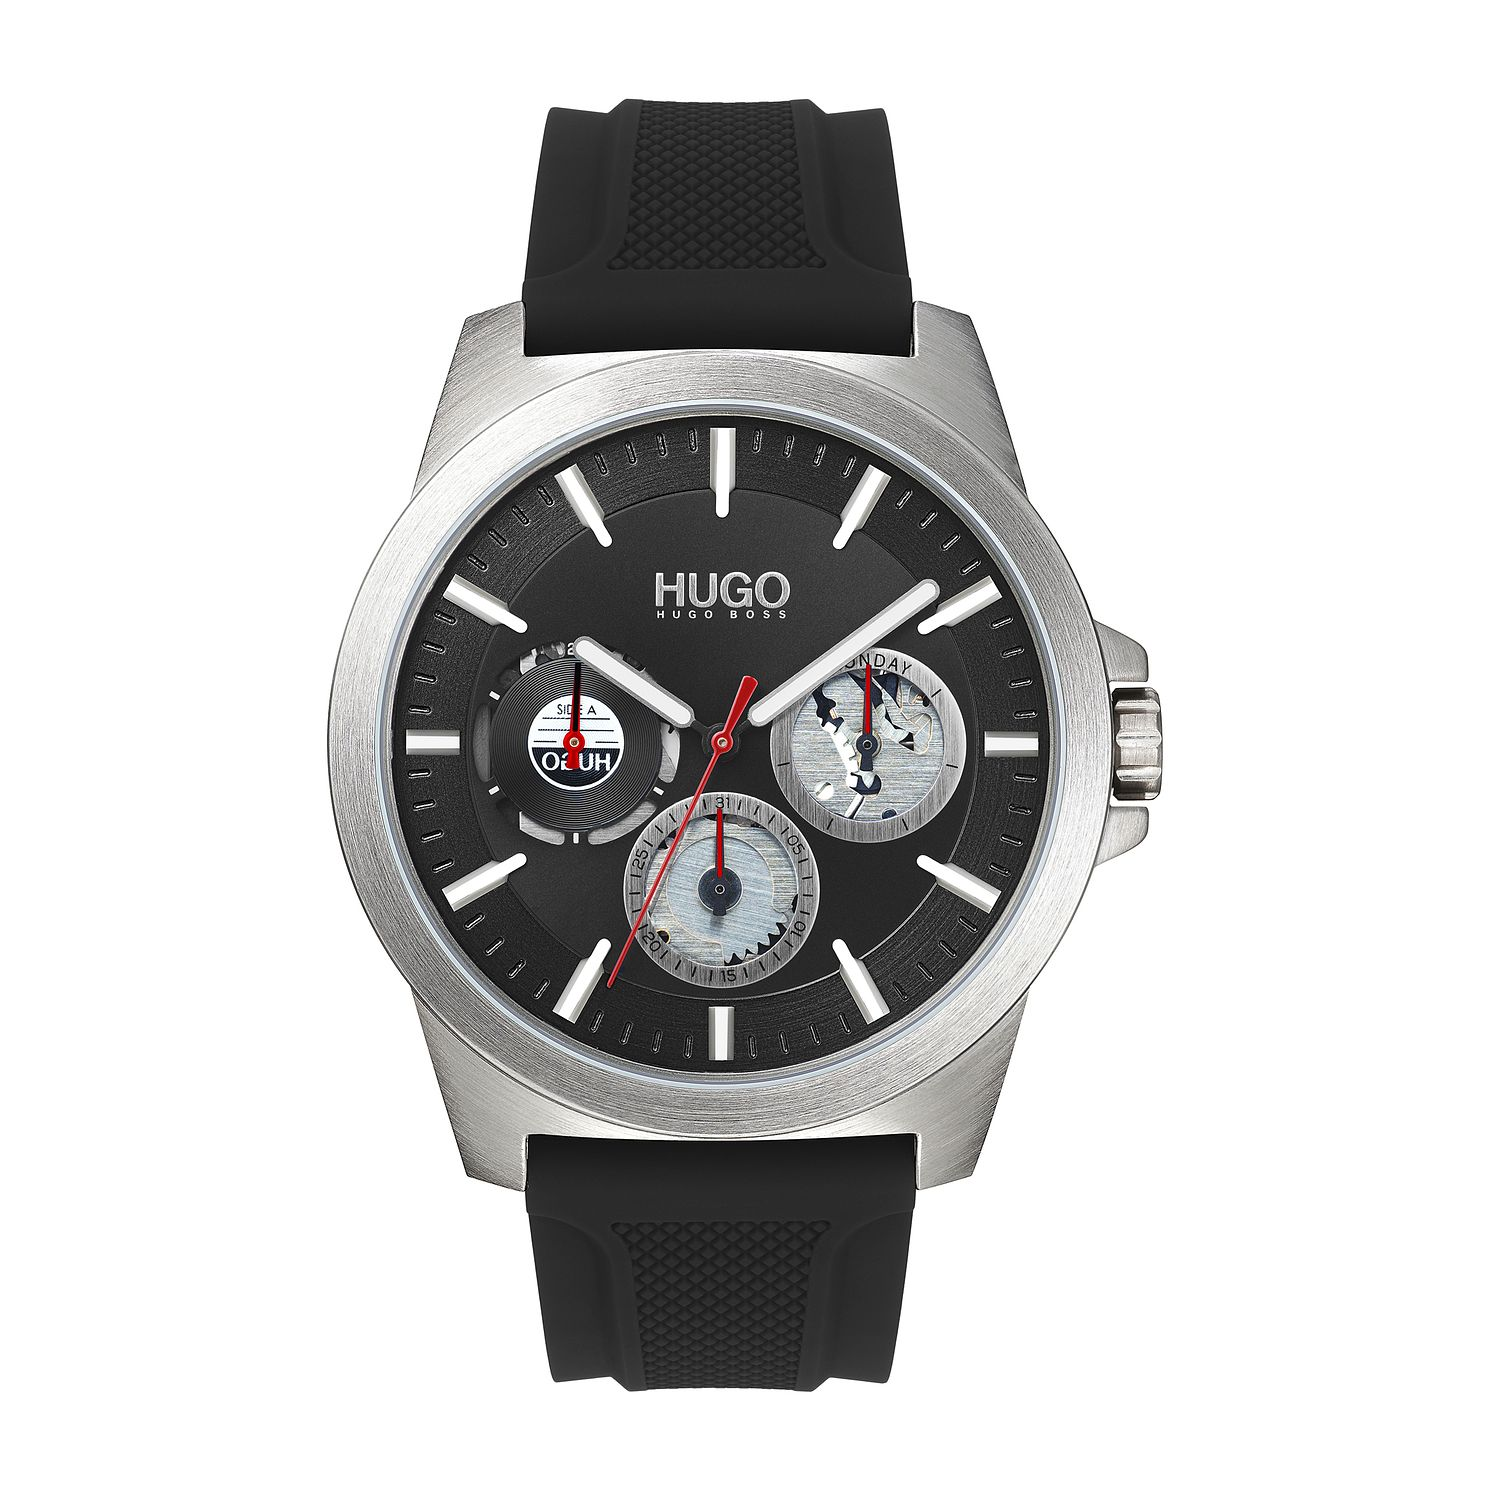 HUGO #TWIST Black Silicone Strap Watch - Product number 4852958